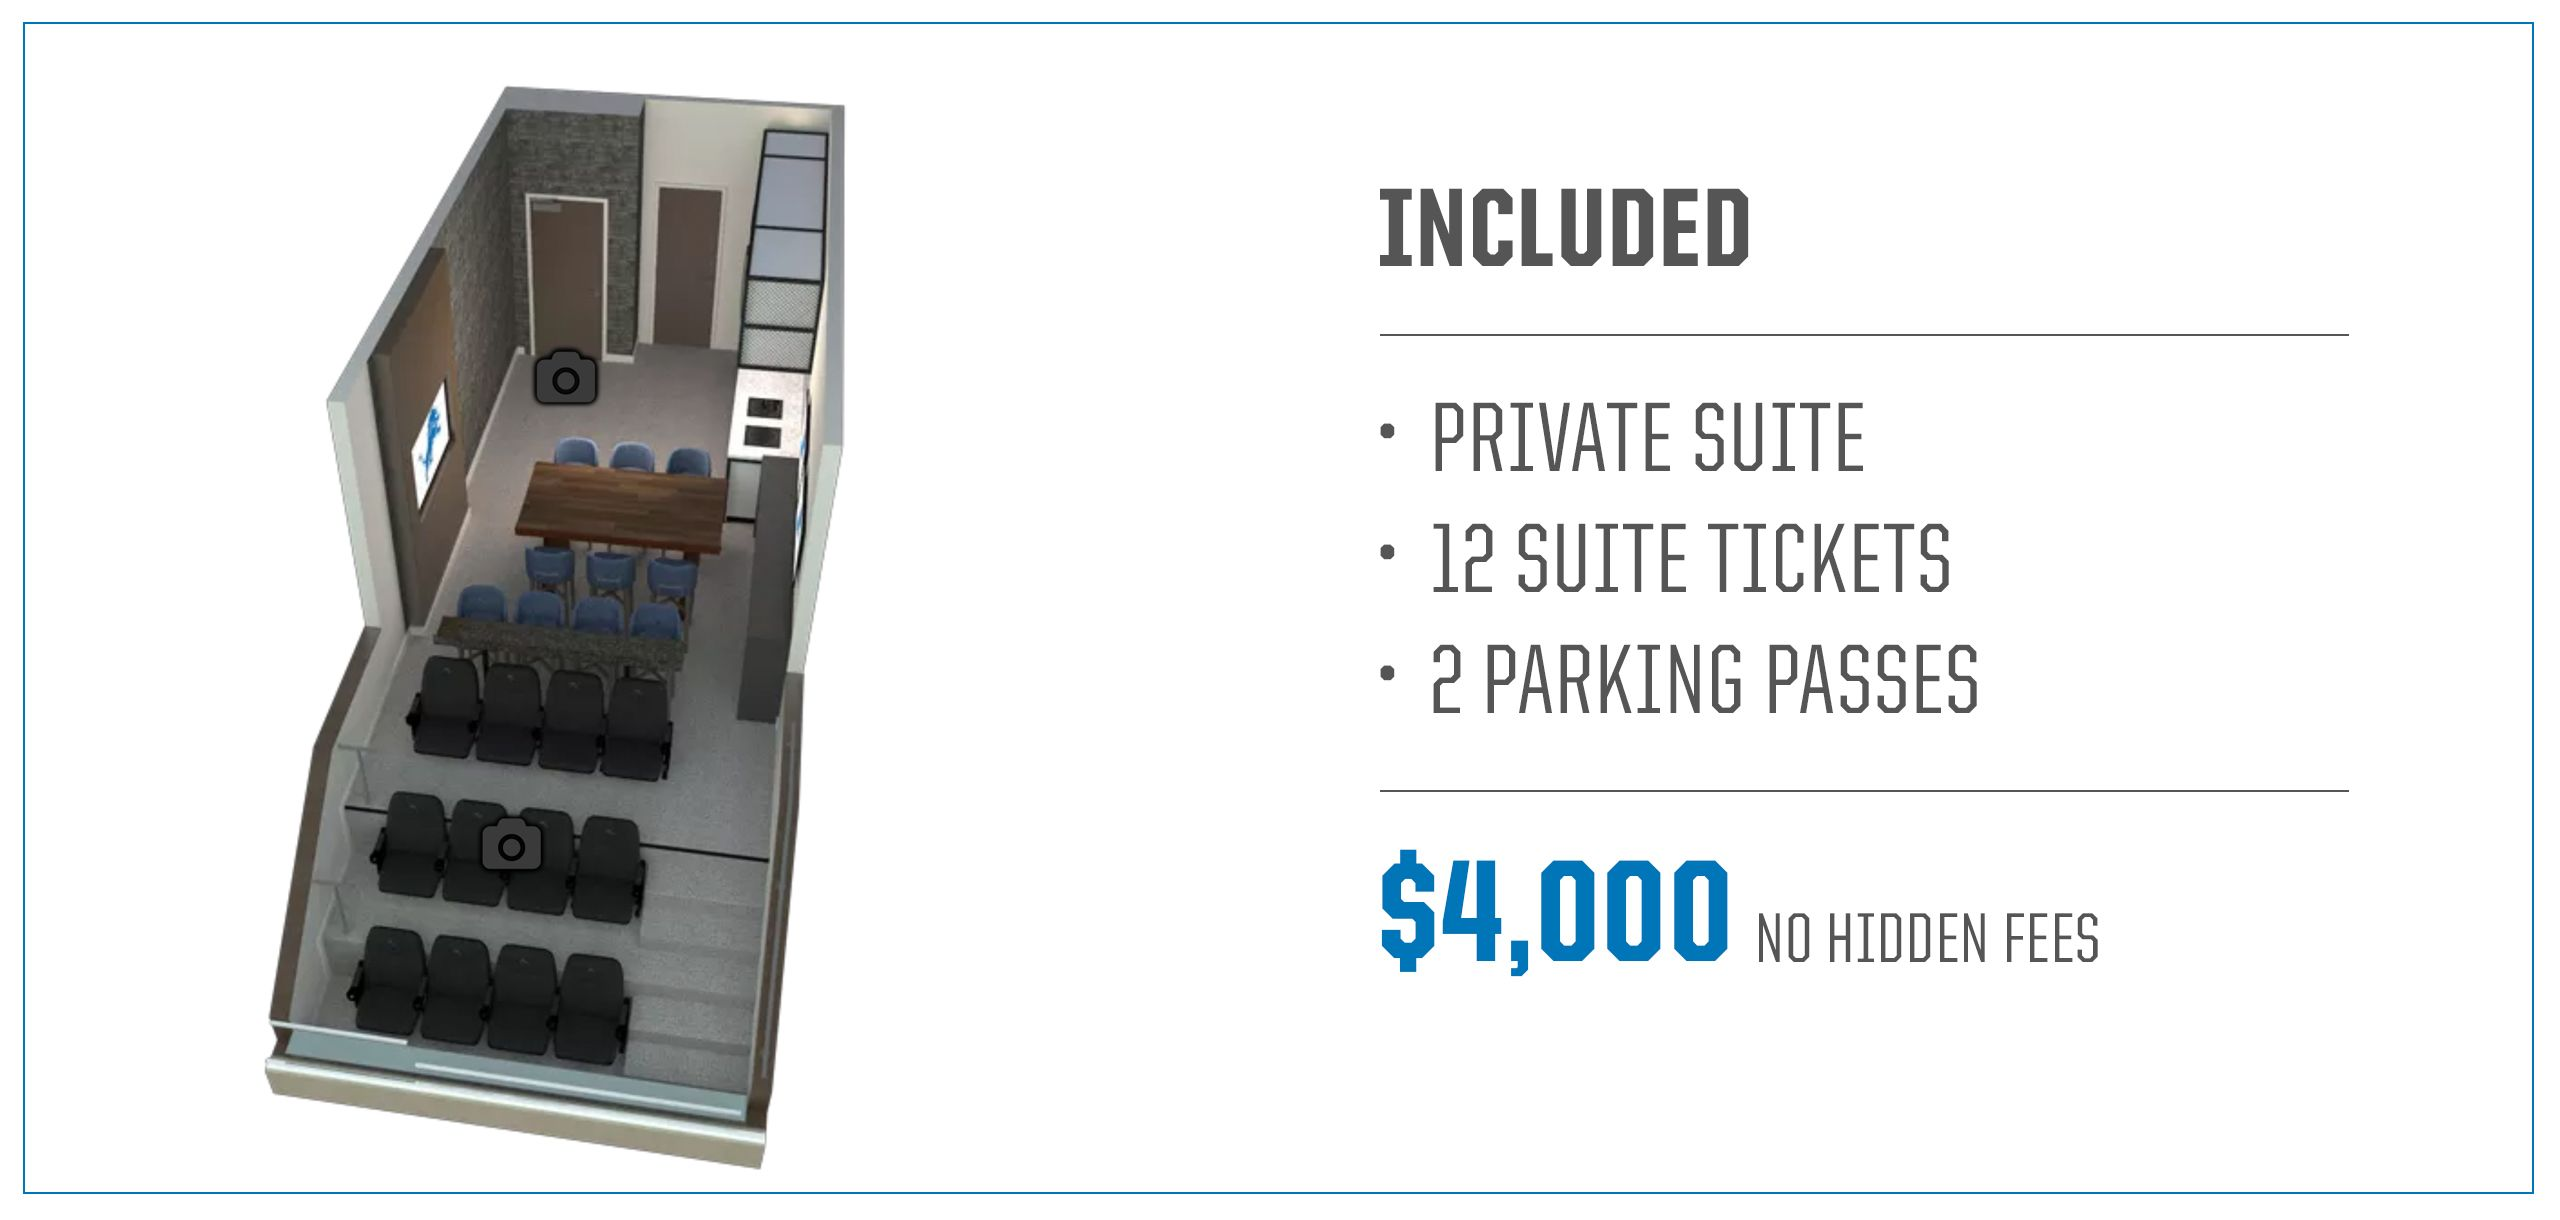 2020-suite-purchase-information-map-630-jets